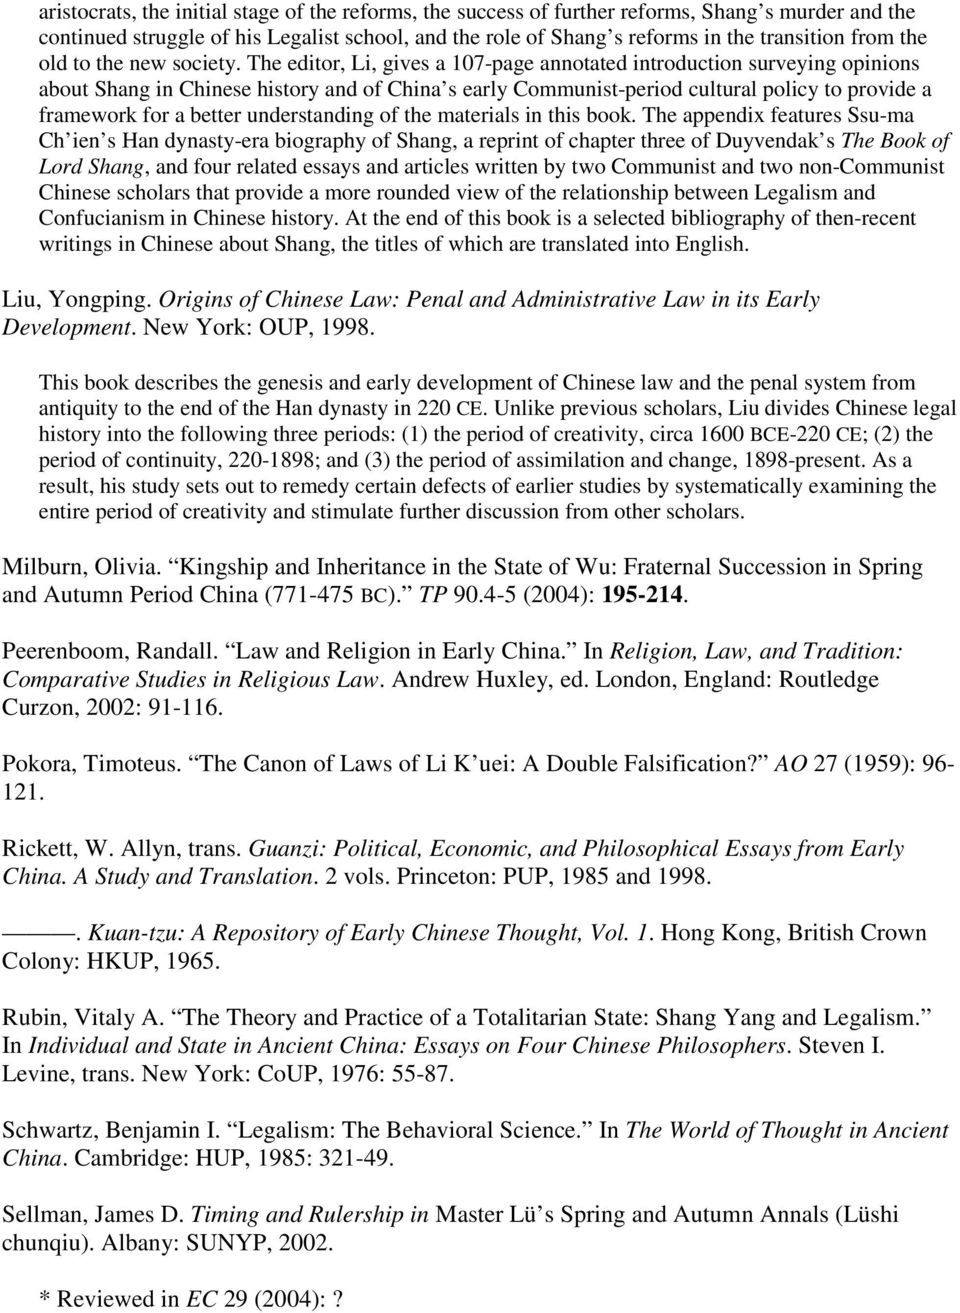 The editor, Li, gives a 107-page annotated introduction surveying opinions about Shang in Chinese history and of China s early Communist-period cultural policy to provide a framework for a better